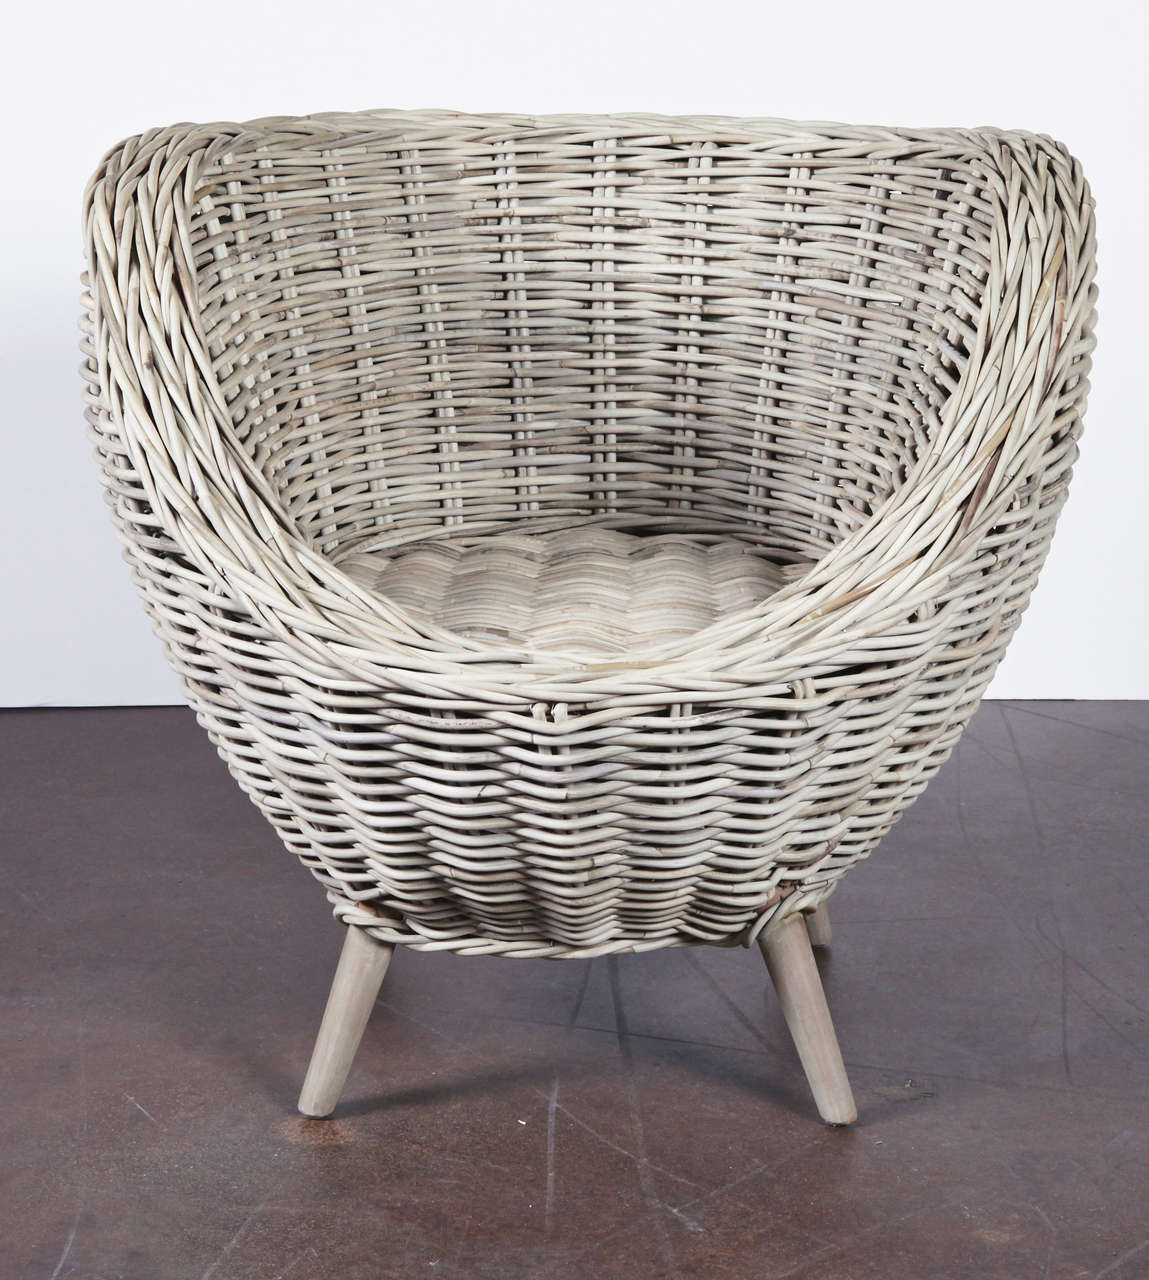 Egg Shaped Wicker Chair Set Of Wicker Egg Shape Chairs At 1stdibs